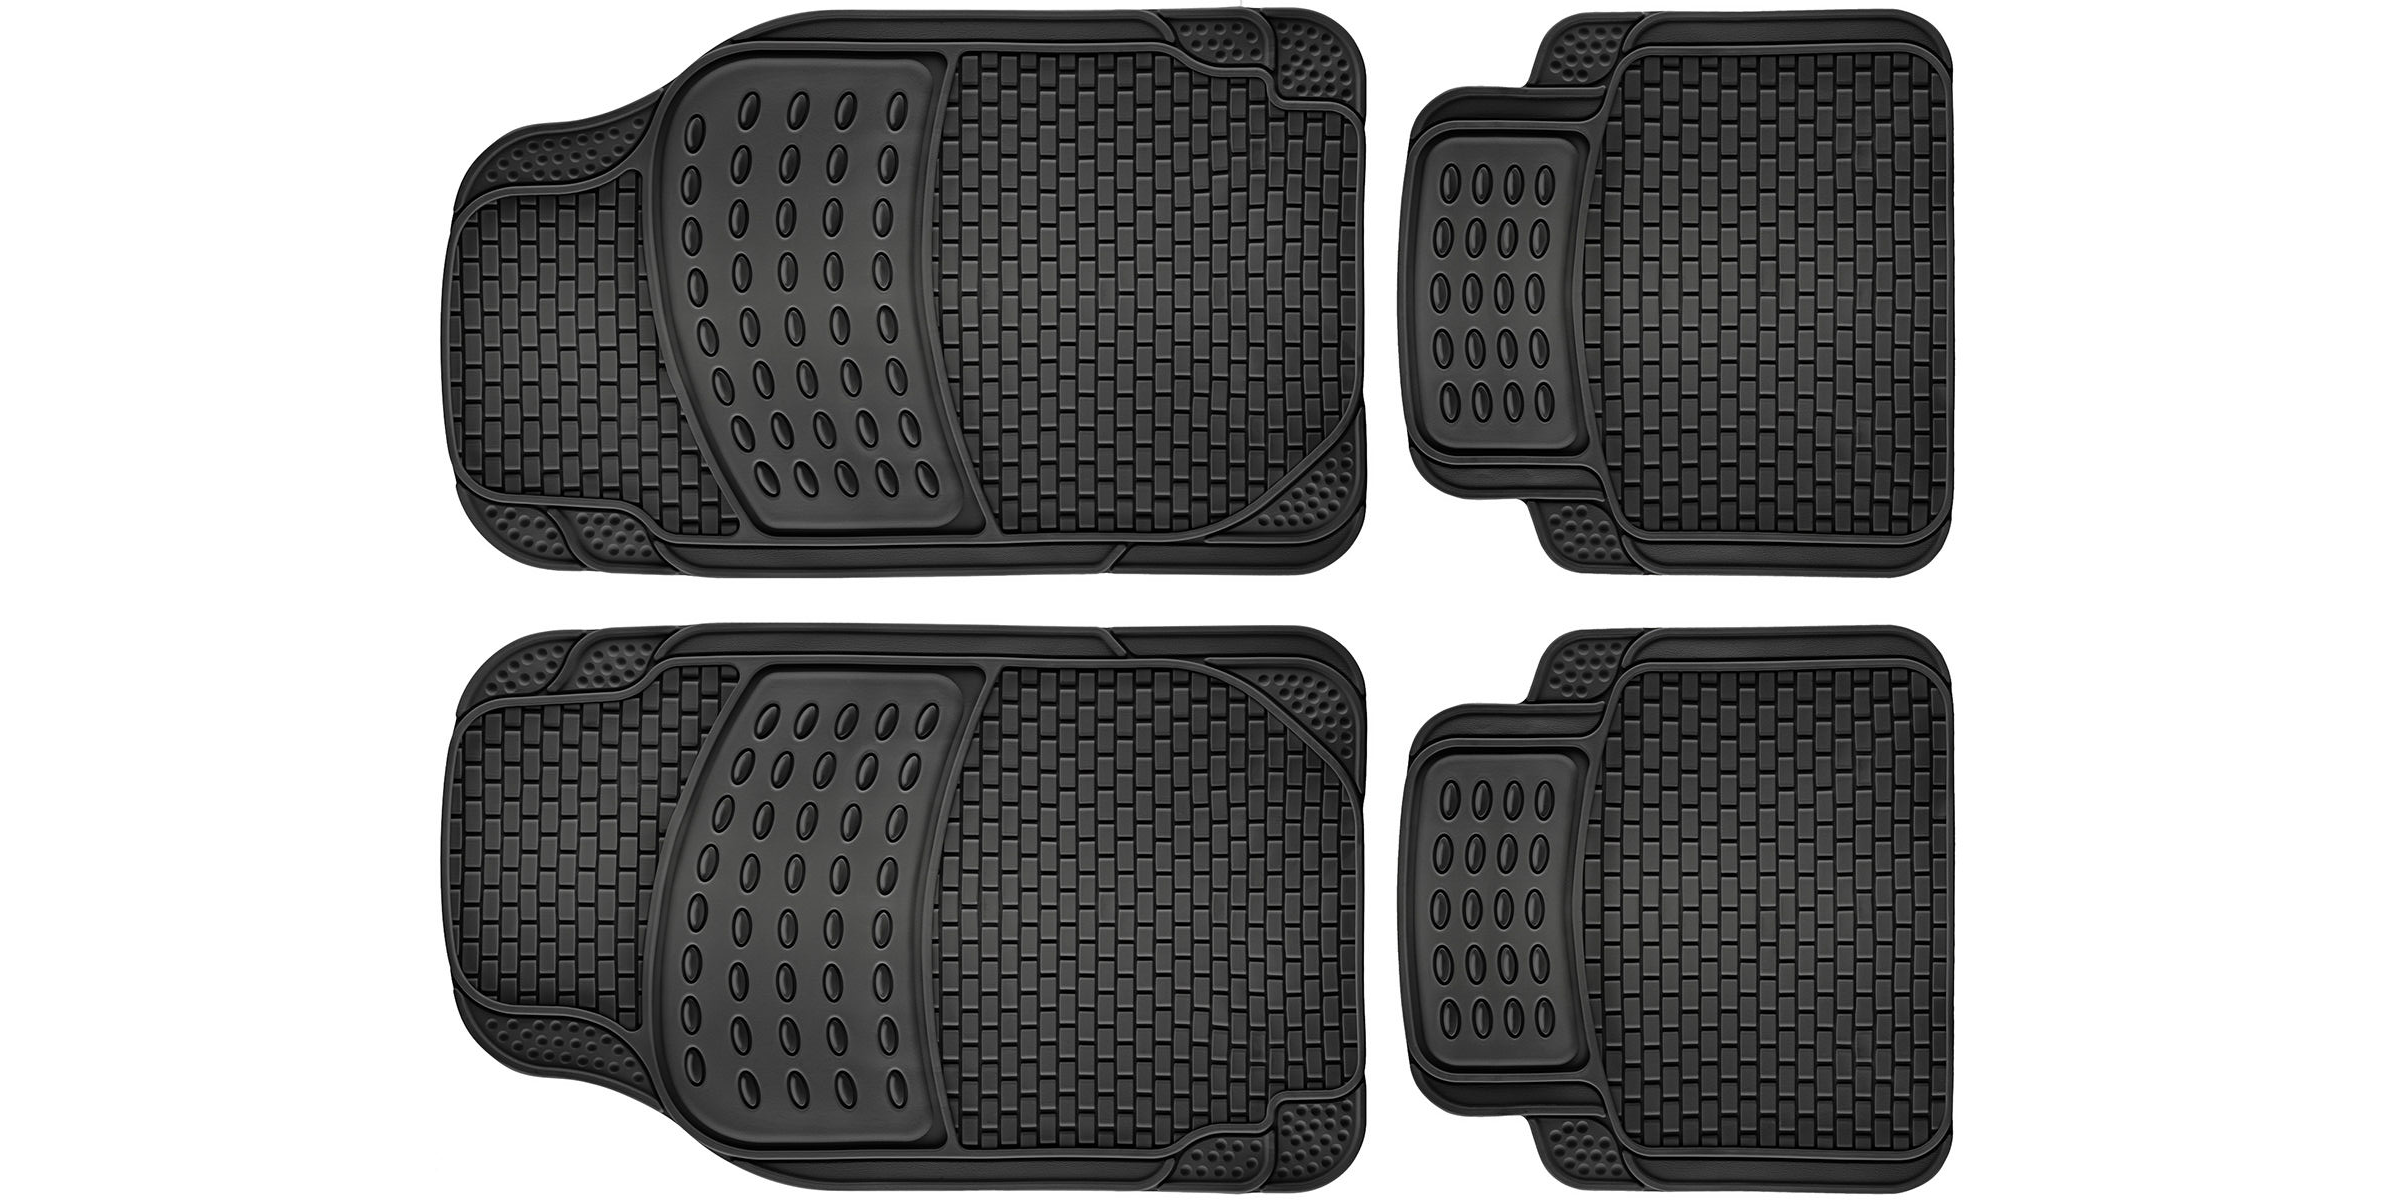 Rubber floor mats sears - Keeping A Vehicle Clean When You Have Kids Can Be A Tough Task A Good Set Of Floor Mats Though Can Protect Your Carpeting This All Weather Rubber 4 Pc